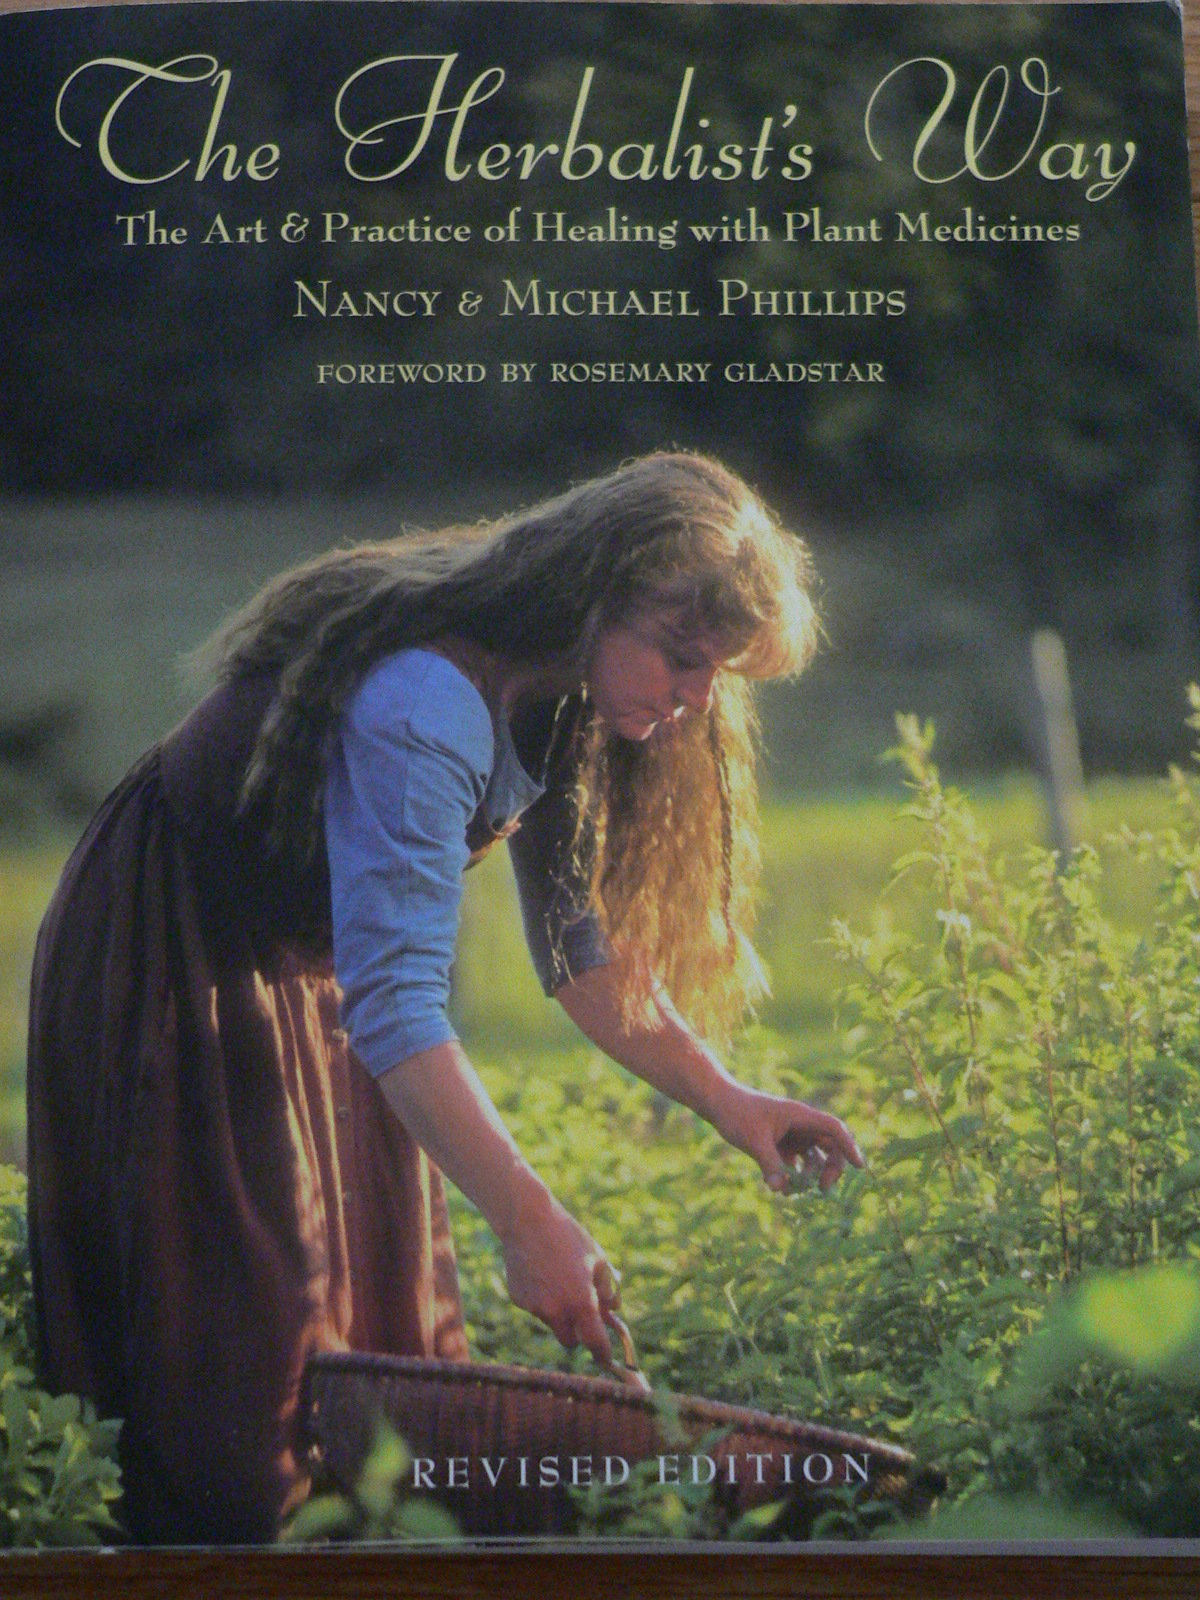 The Herbalist's Way: The Art & Practice of Healing with Plant Medicine